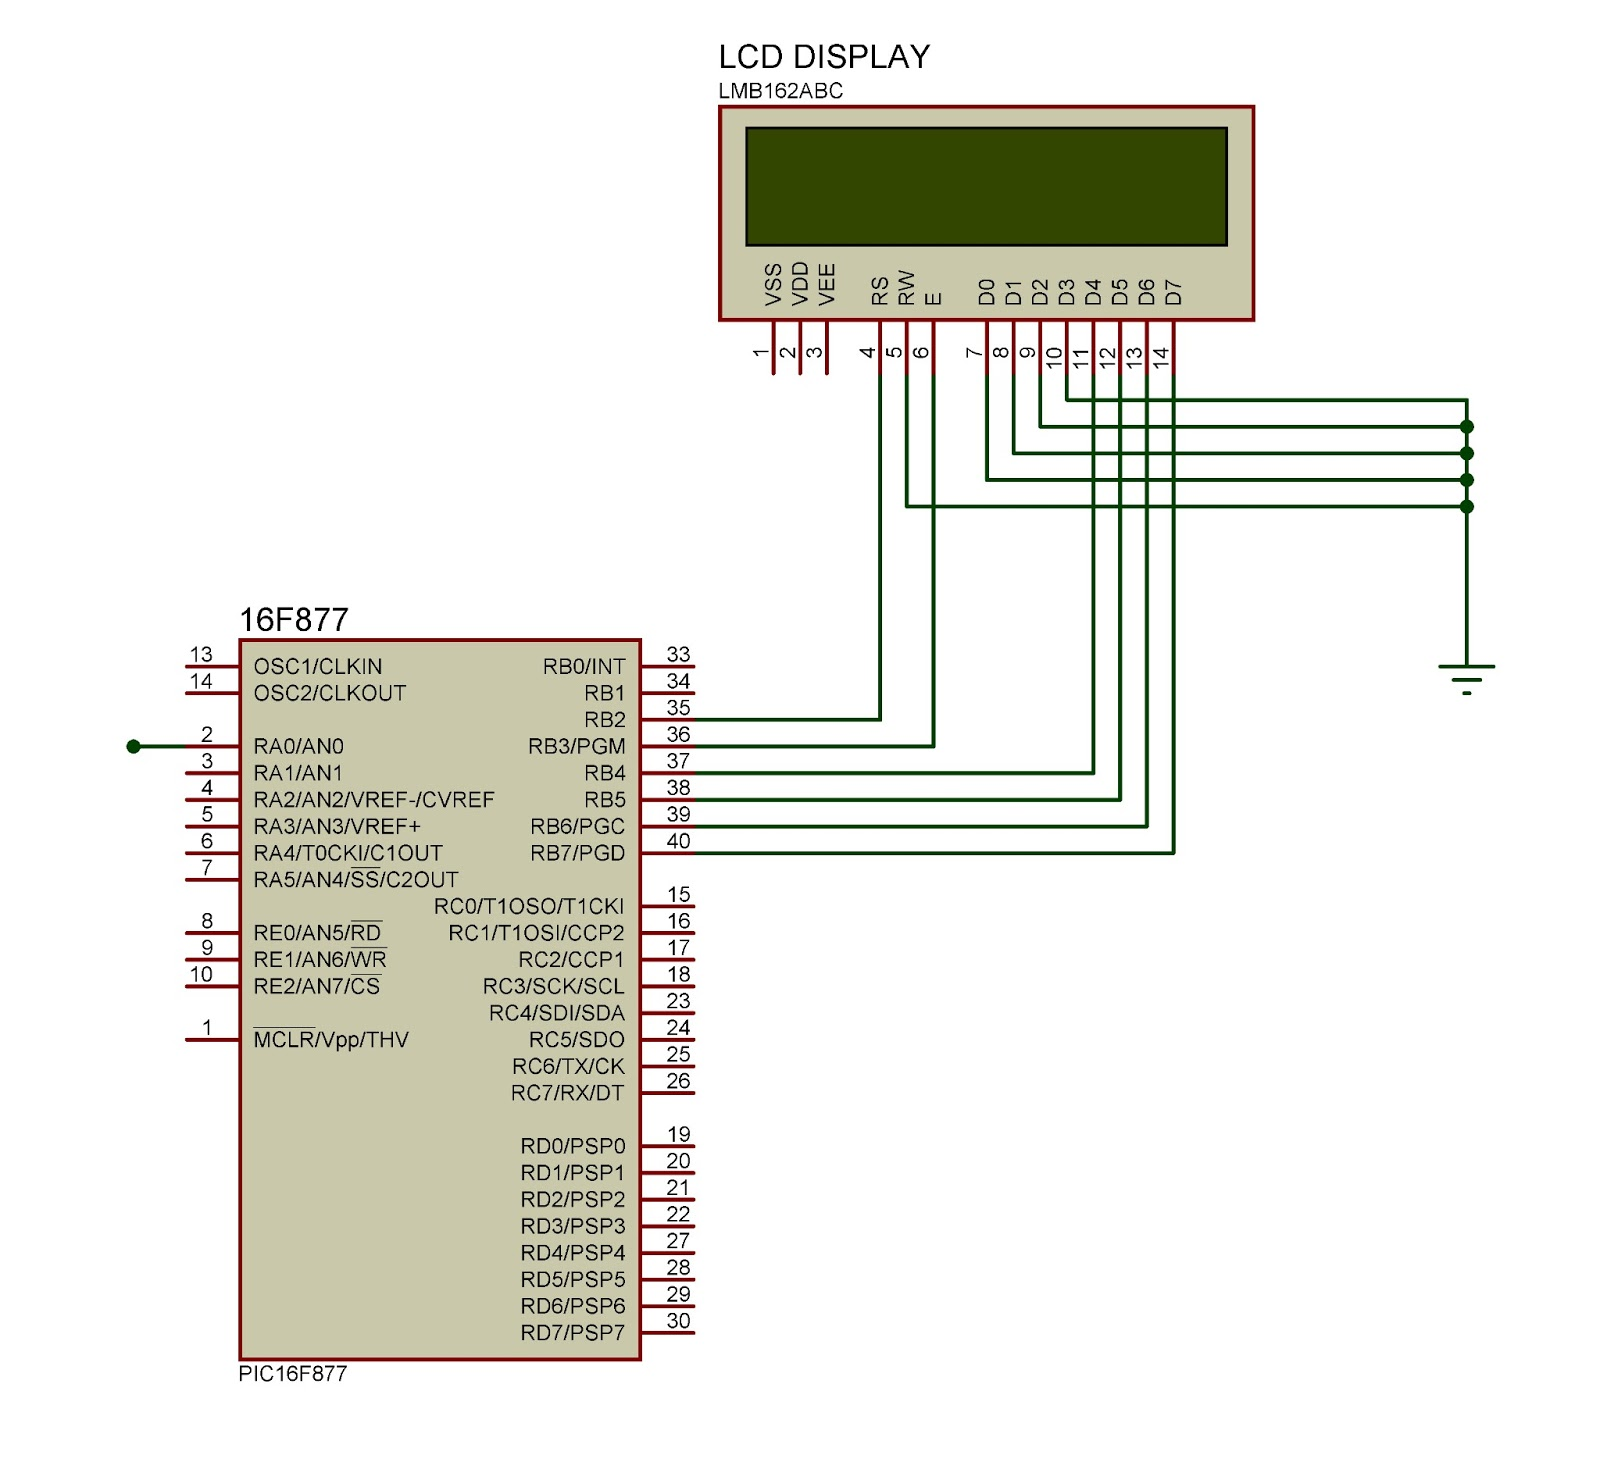 LCD Display with Microcontroller - schematic